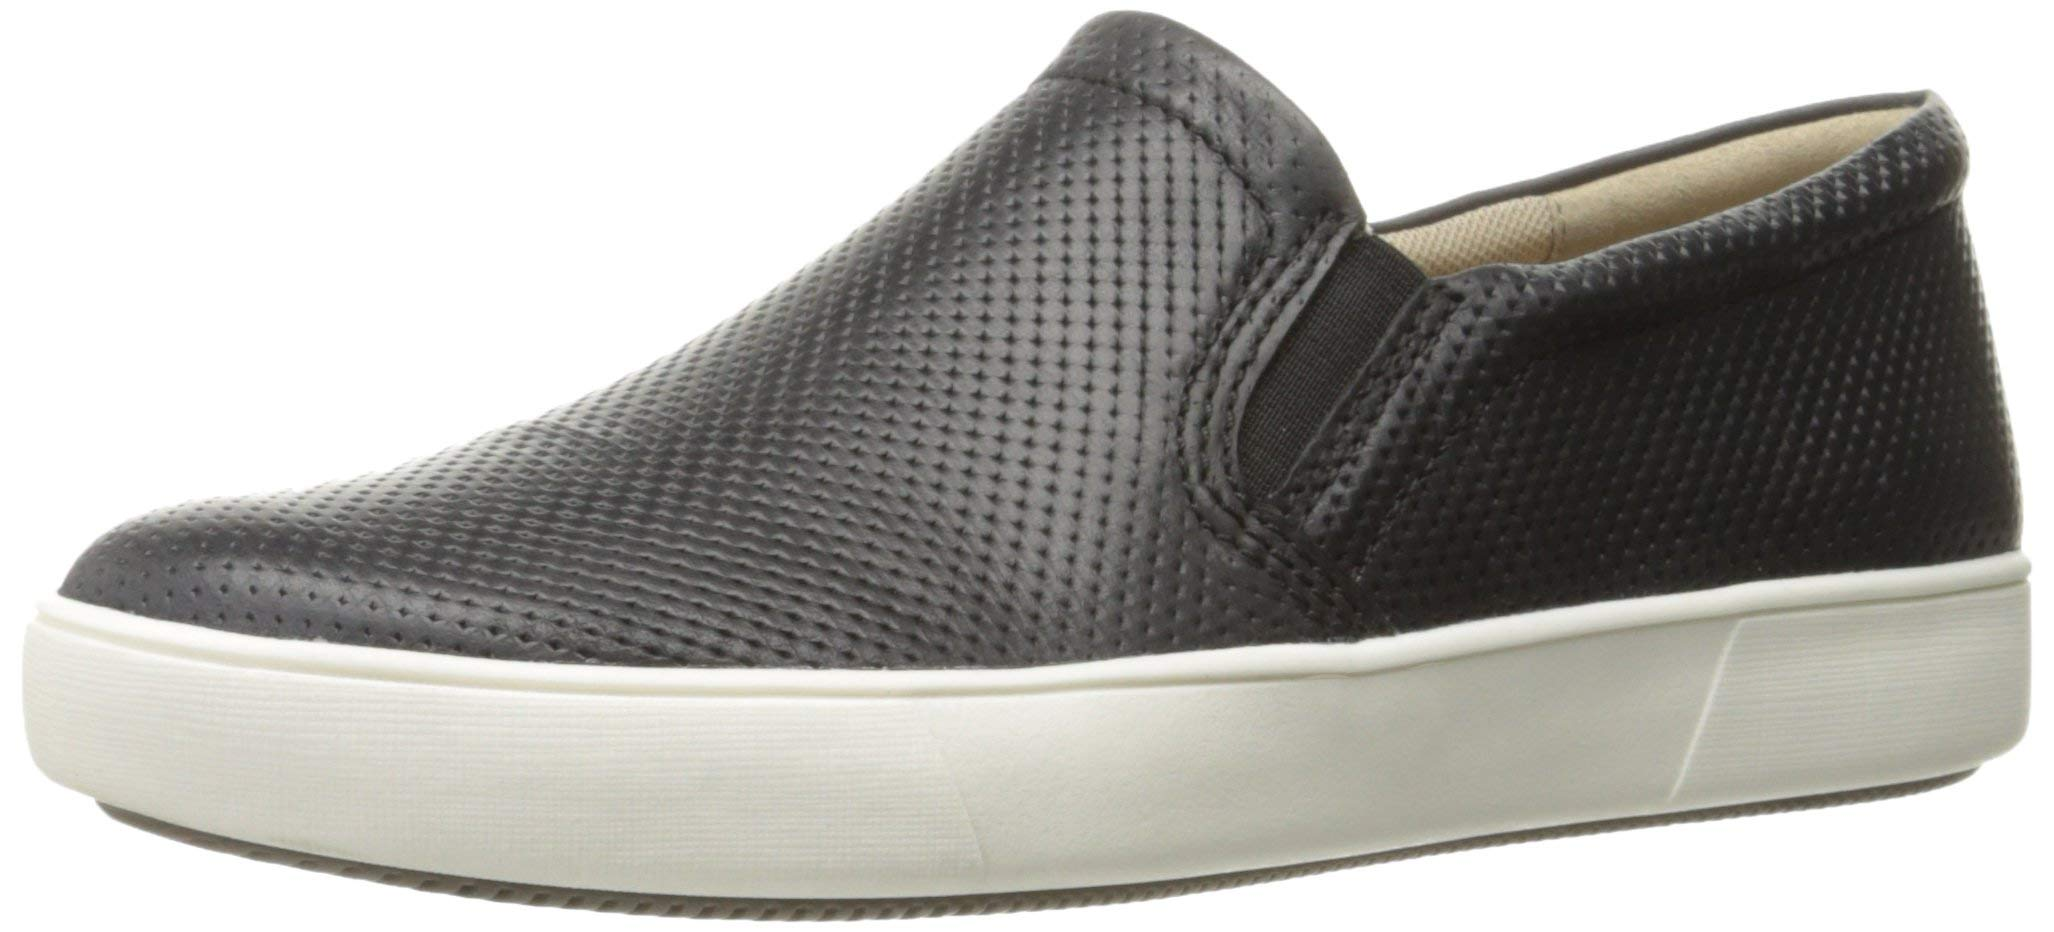 Naturalizer Women's Marianne Sneaker, Black, 9 M US